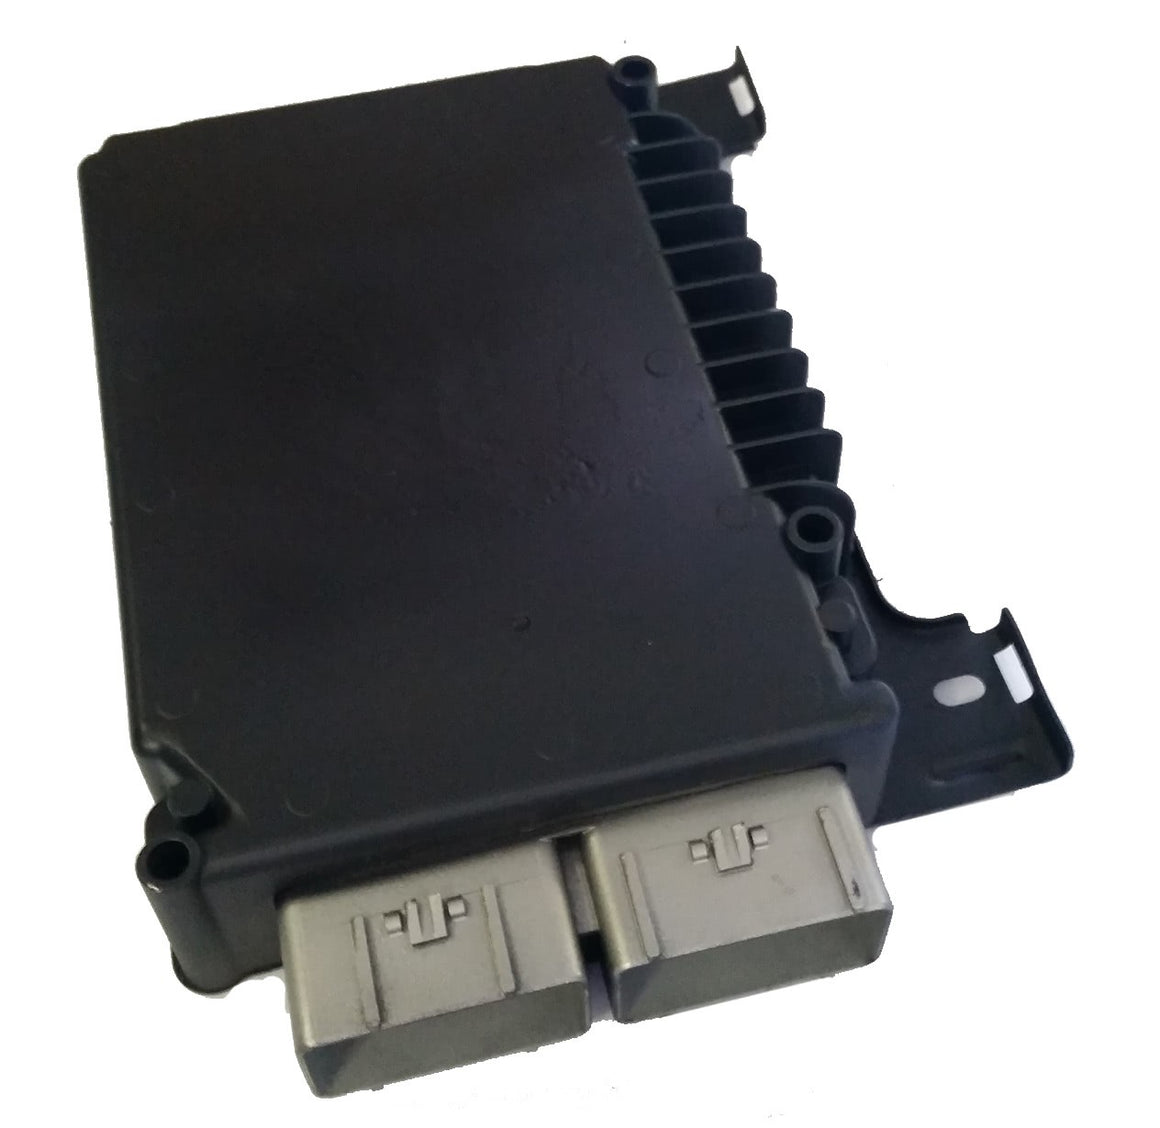 Dodge Ram Truck Power-train Control Module (PCM / ECM / ECU)